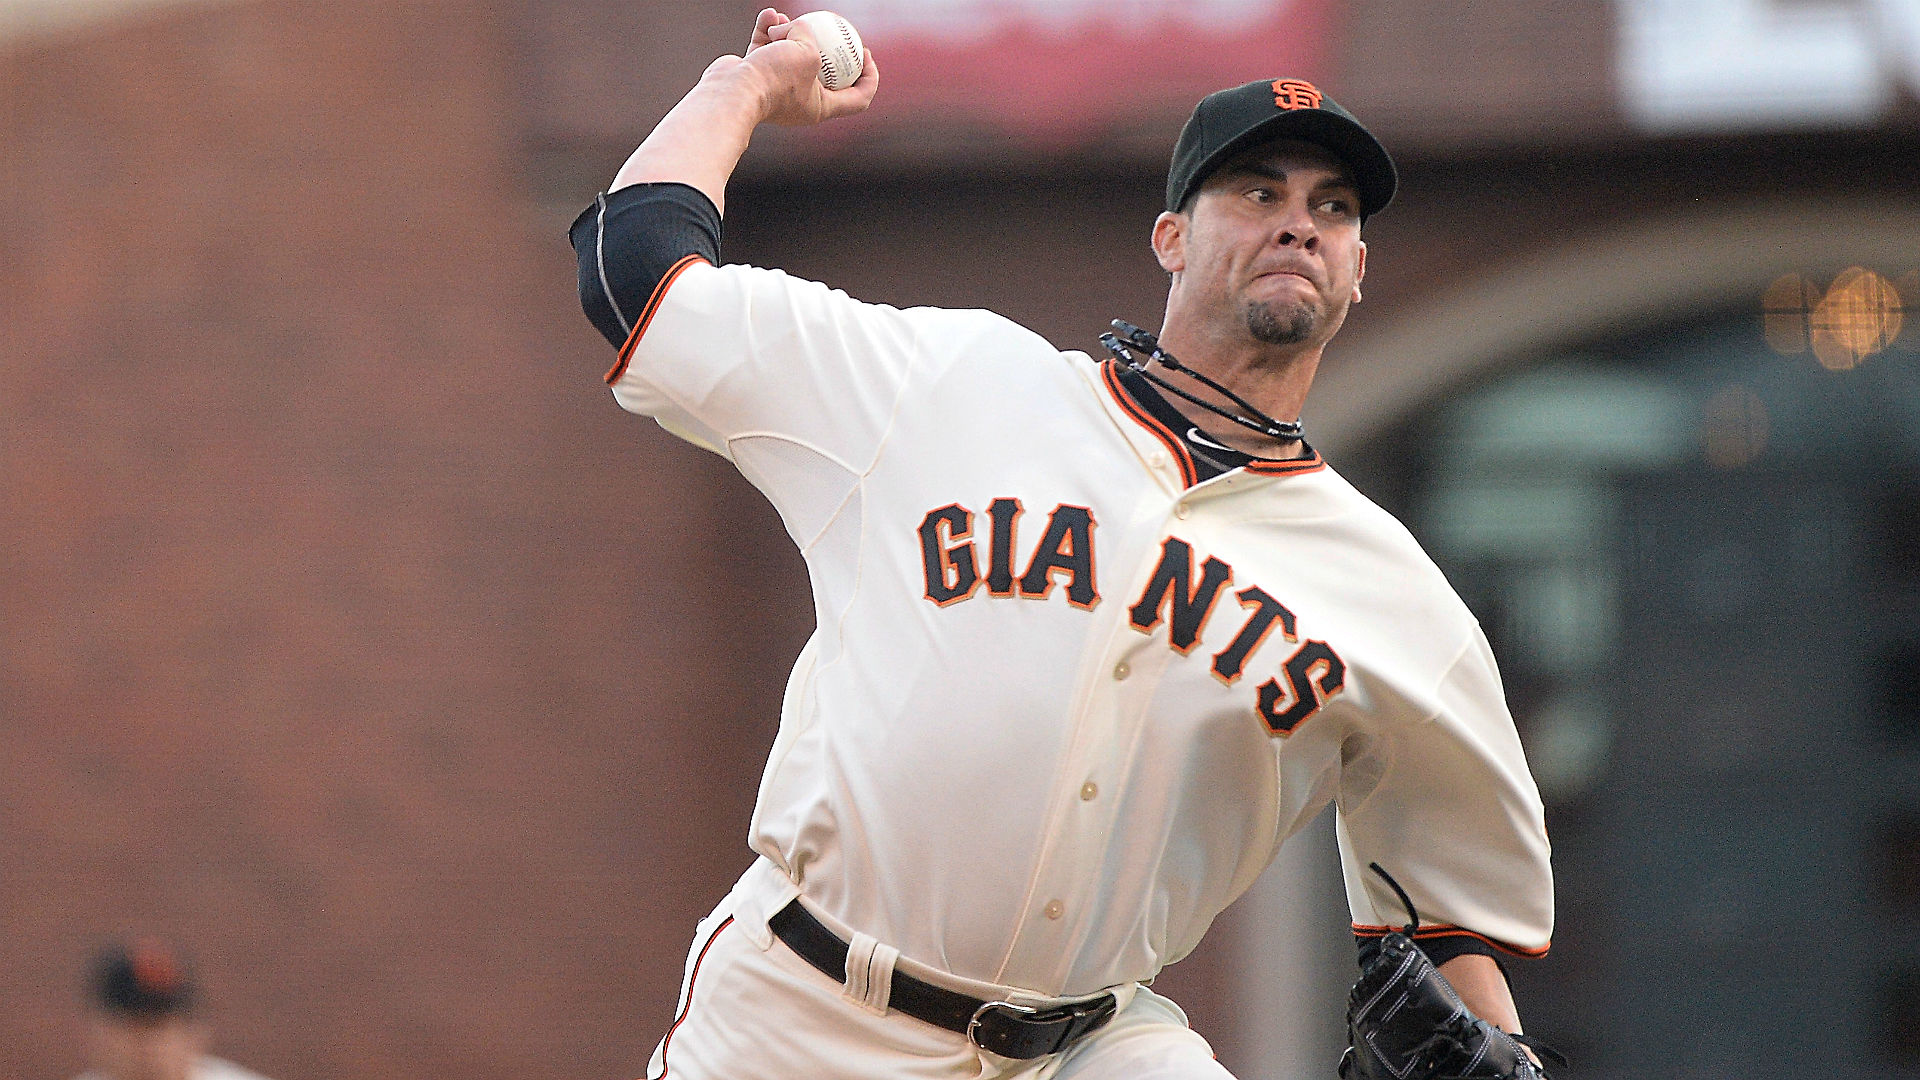 World Series Game 4 odds and pick – Giants' Vogelsong a shaky proposition as favorite